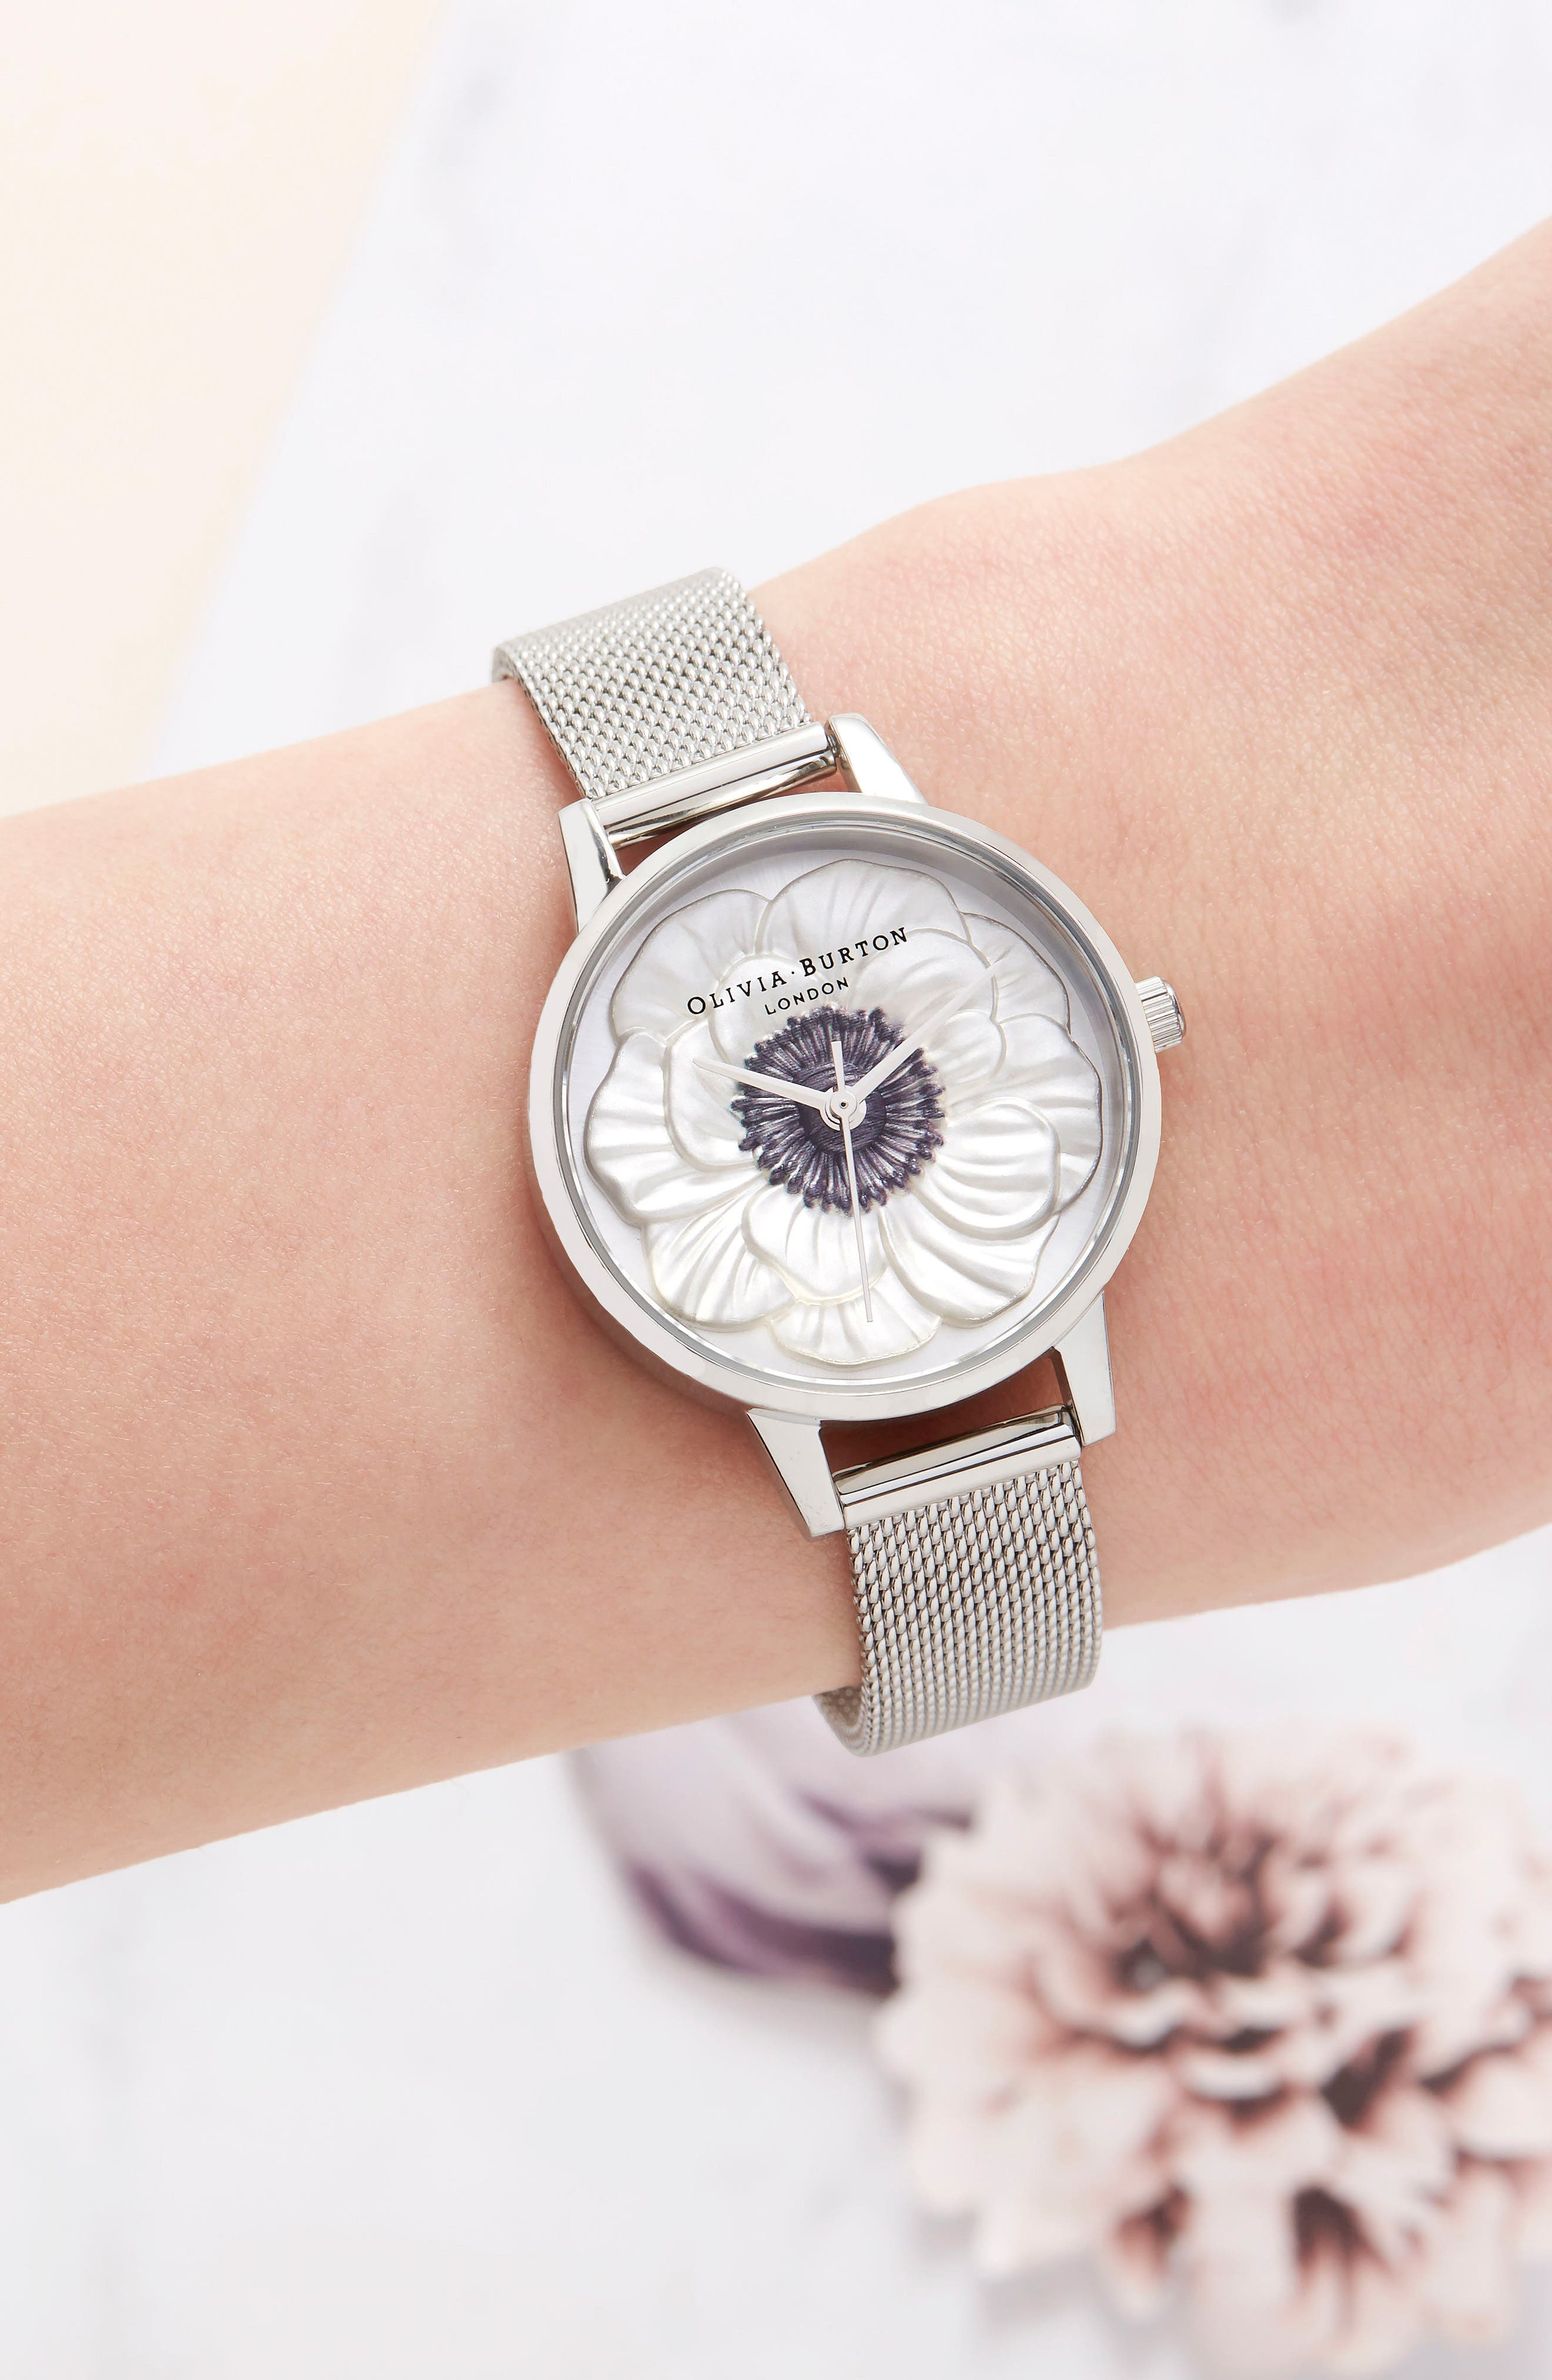 3D Anemone Mesh Strap Watch, 30mm,                             Alternate thumbnail 7, color,                             SILVER/ BLACK/ SILVER